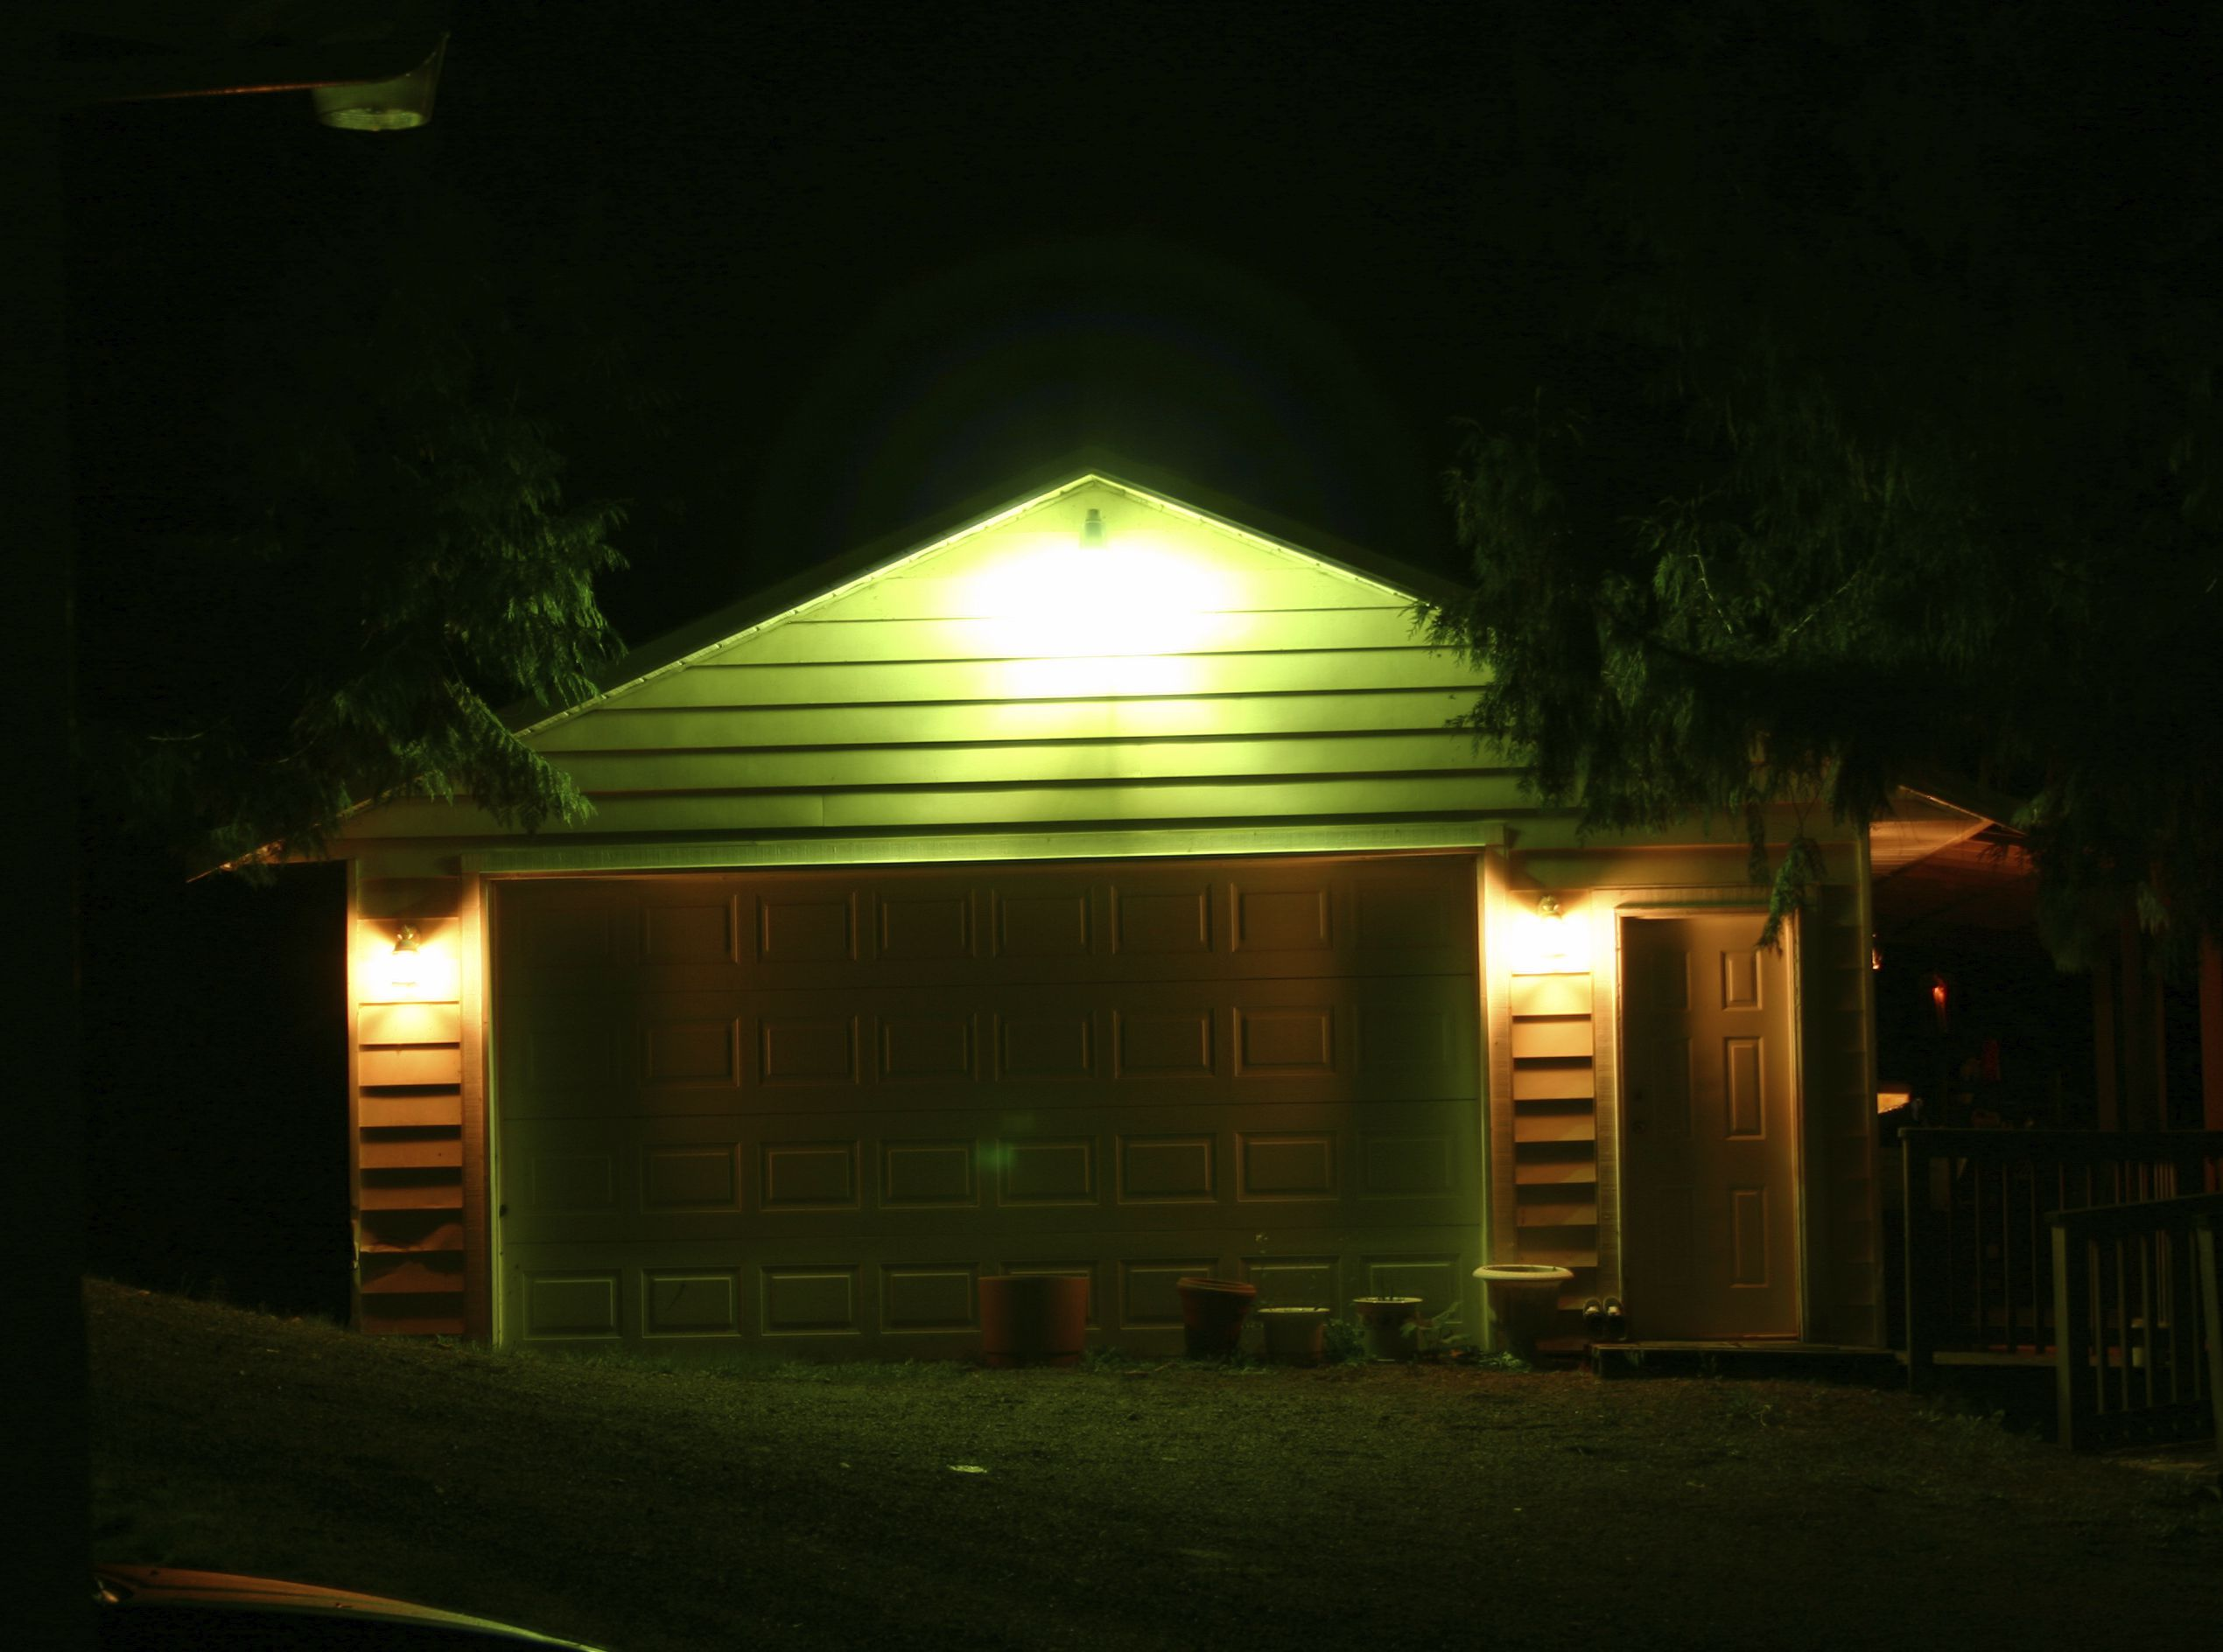 Garage At Night - iStock_000000164339_Medium